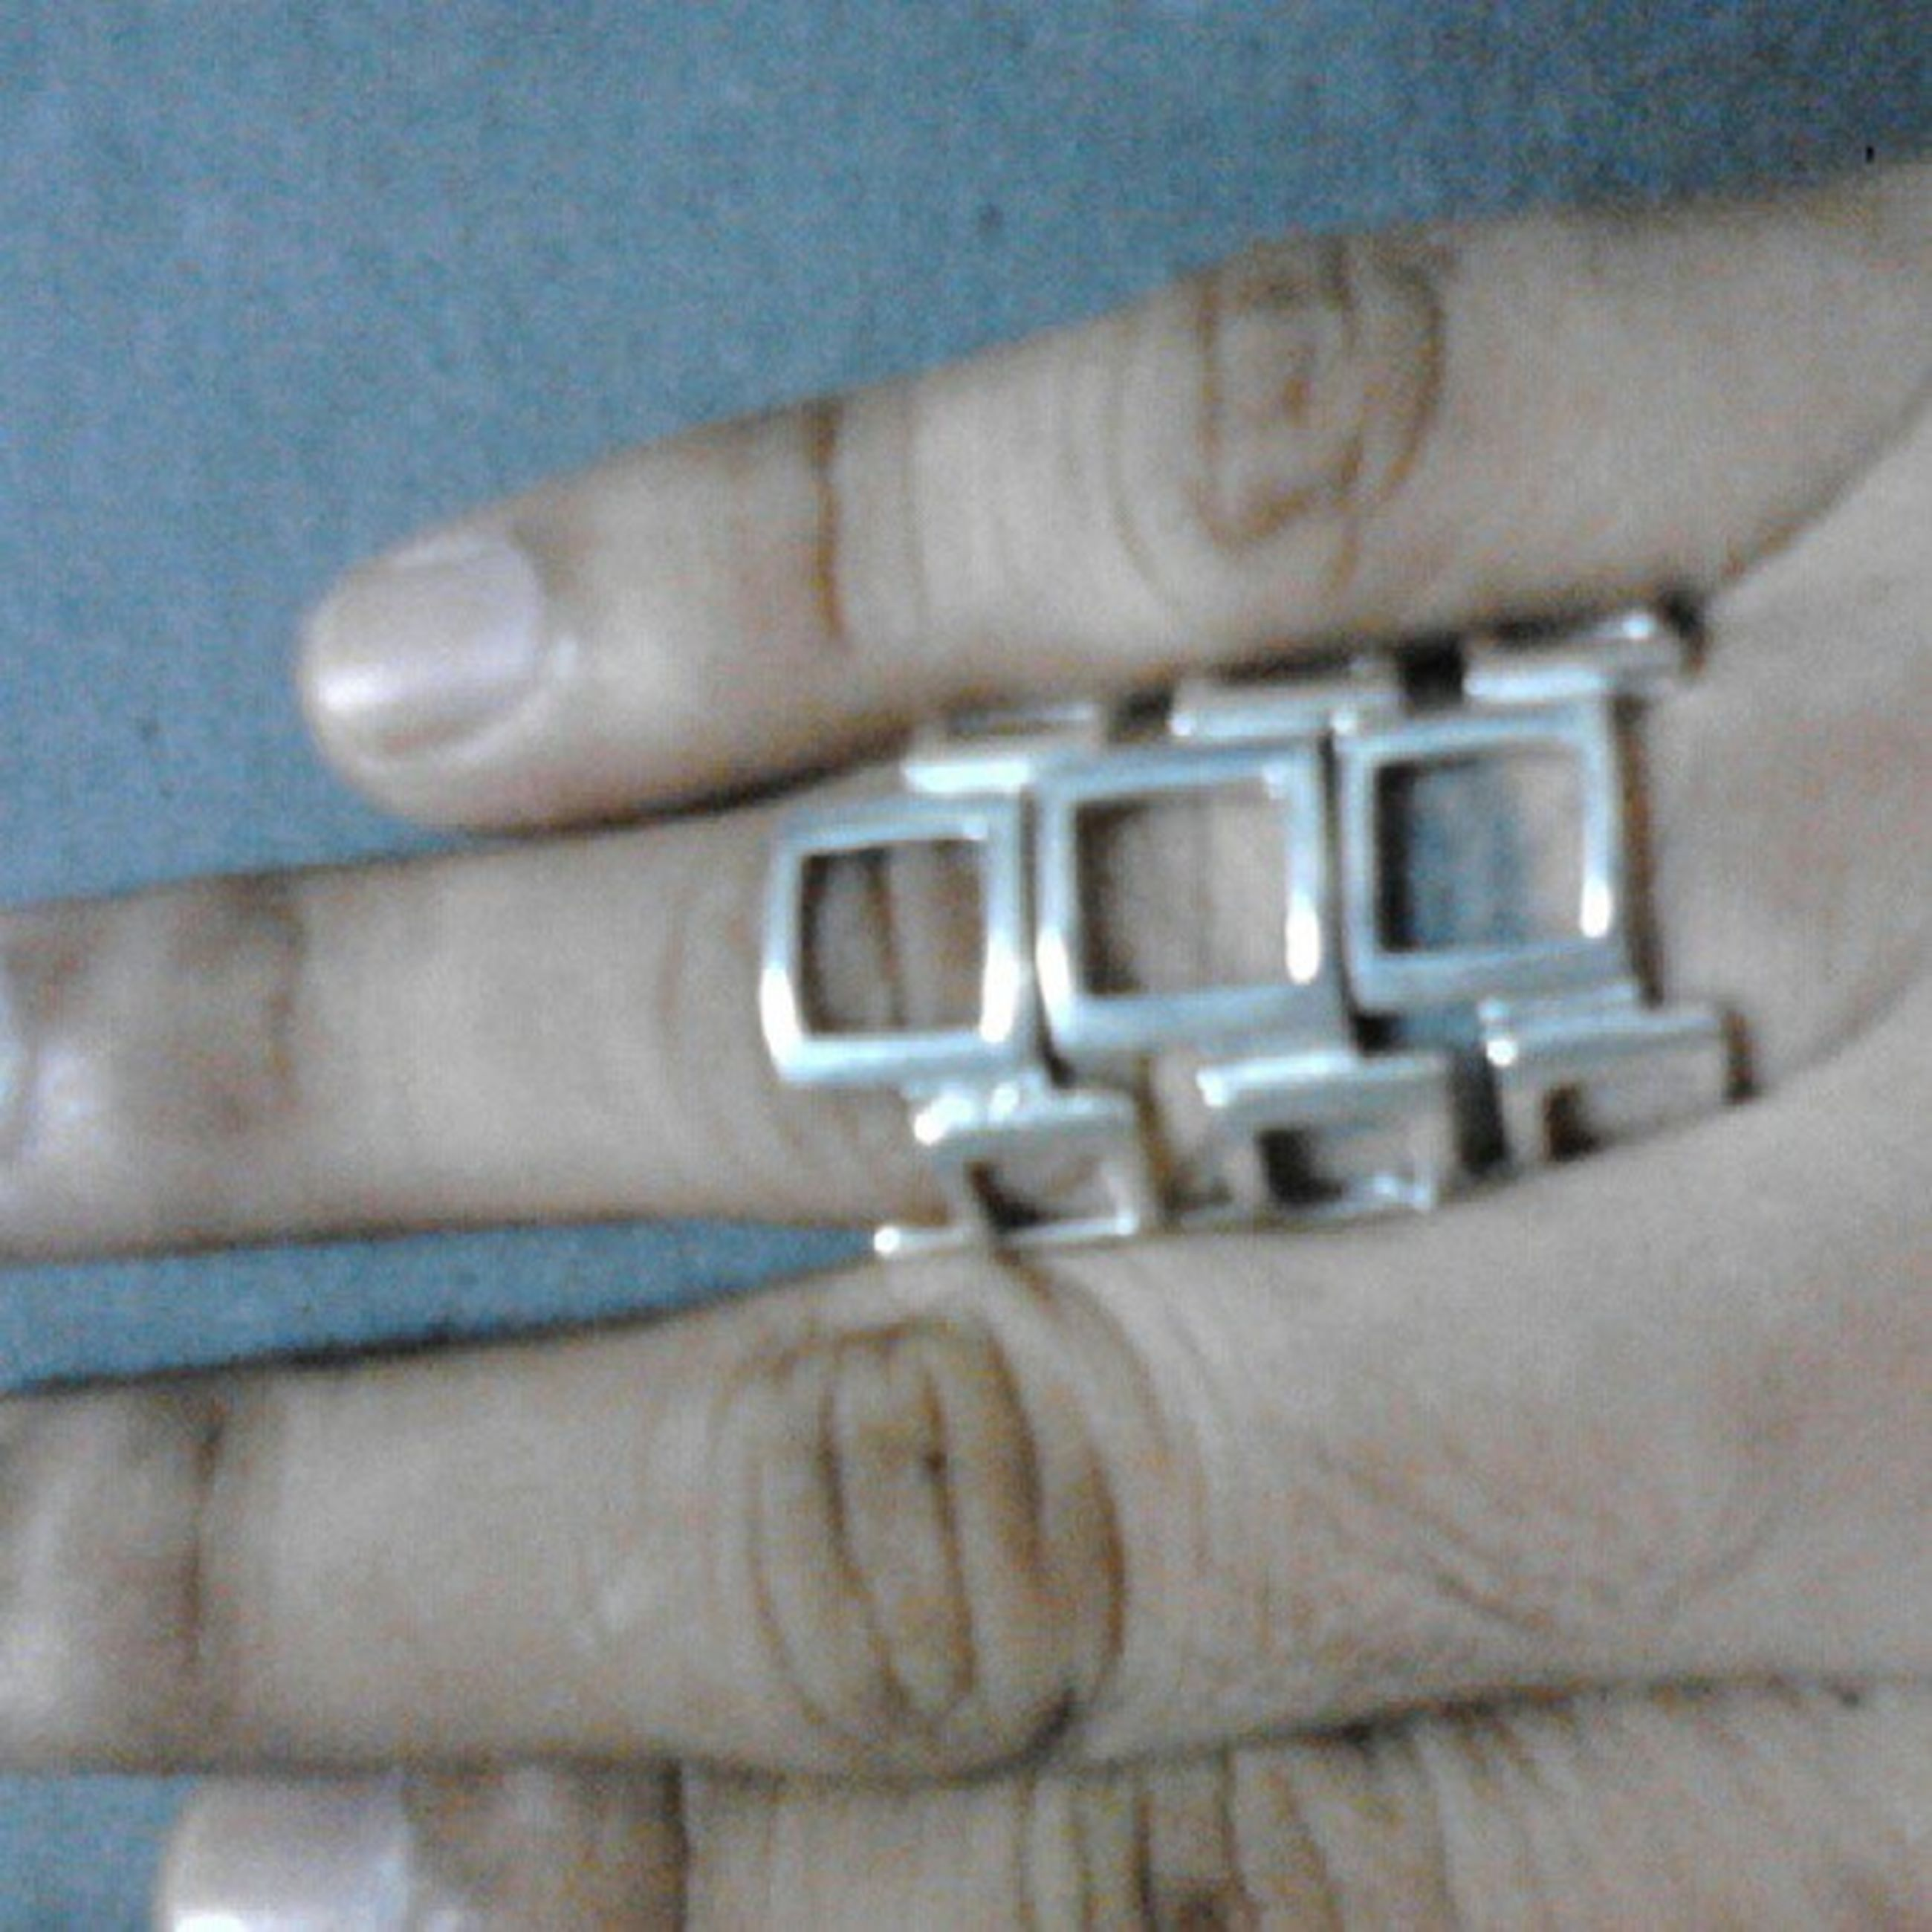 person, part of, indoors, close-up, cropped, human finger, selective focus, focus on foreground, holding, unrecognizable person, metal, men, technology, connection, detail, lifestyles, music